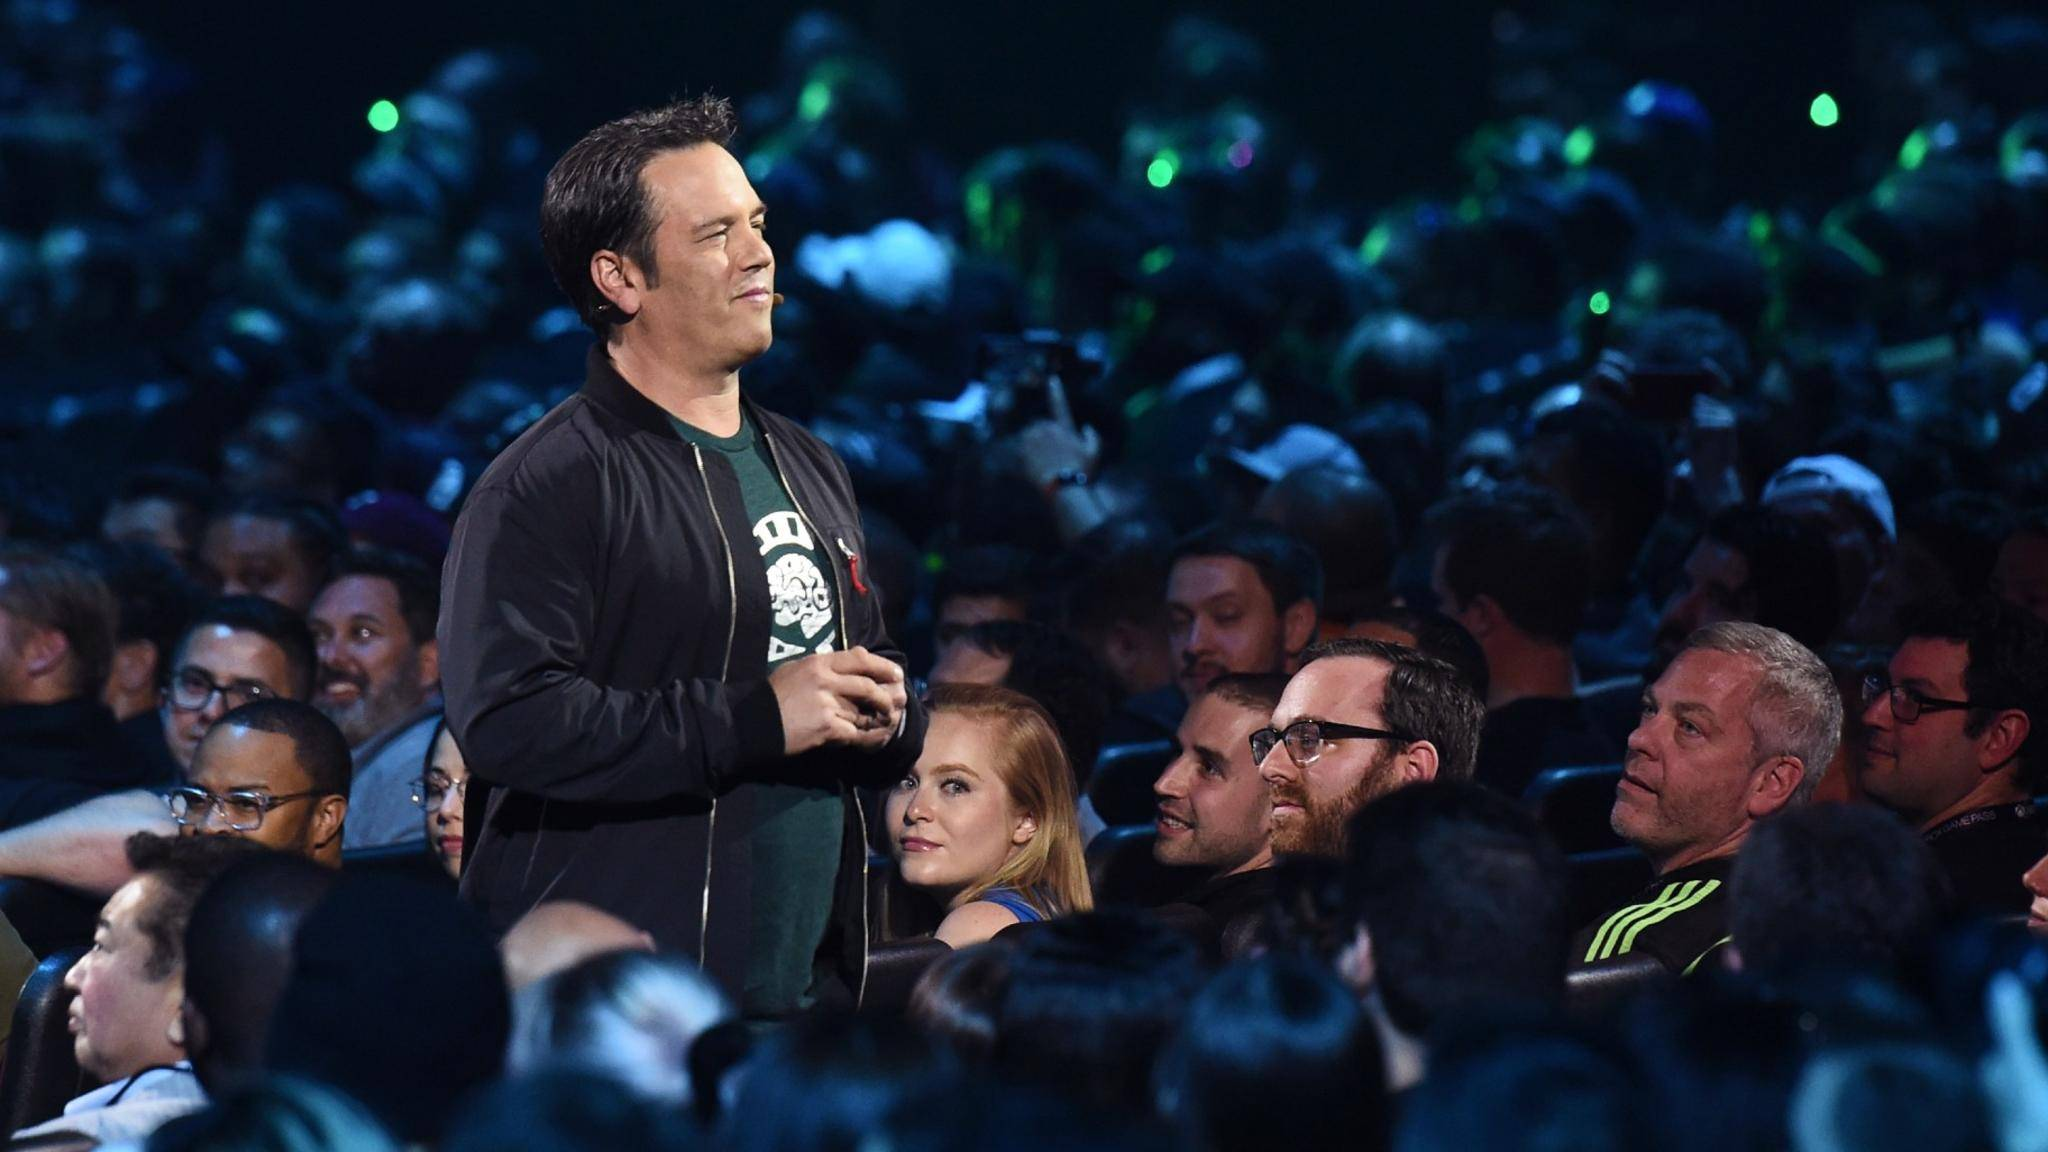 Xbox-Boss Phil Spencer auf der E3 2019.